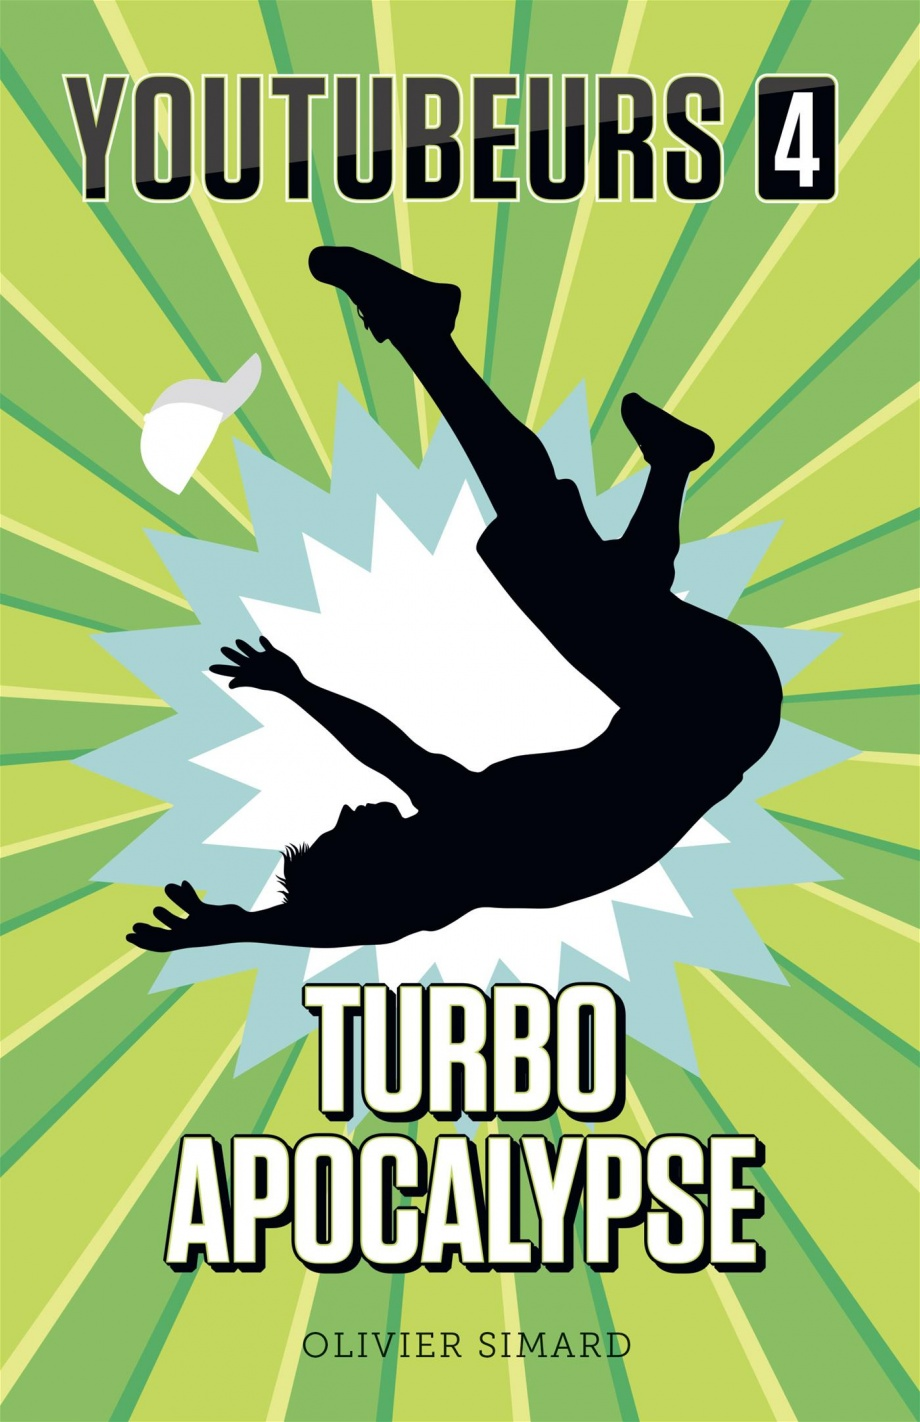 Turbo apocalypse